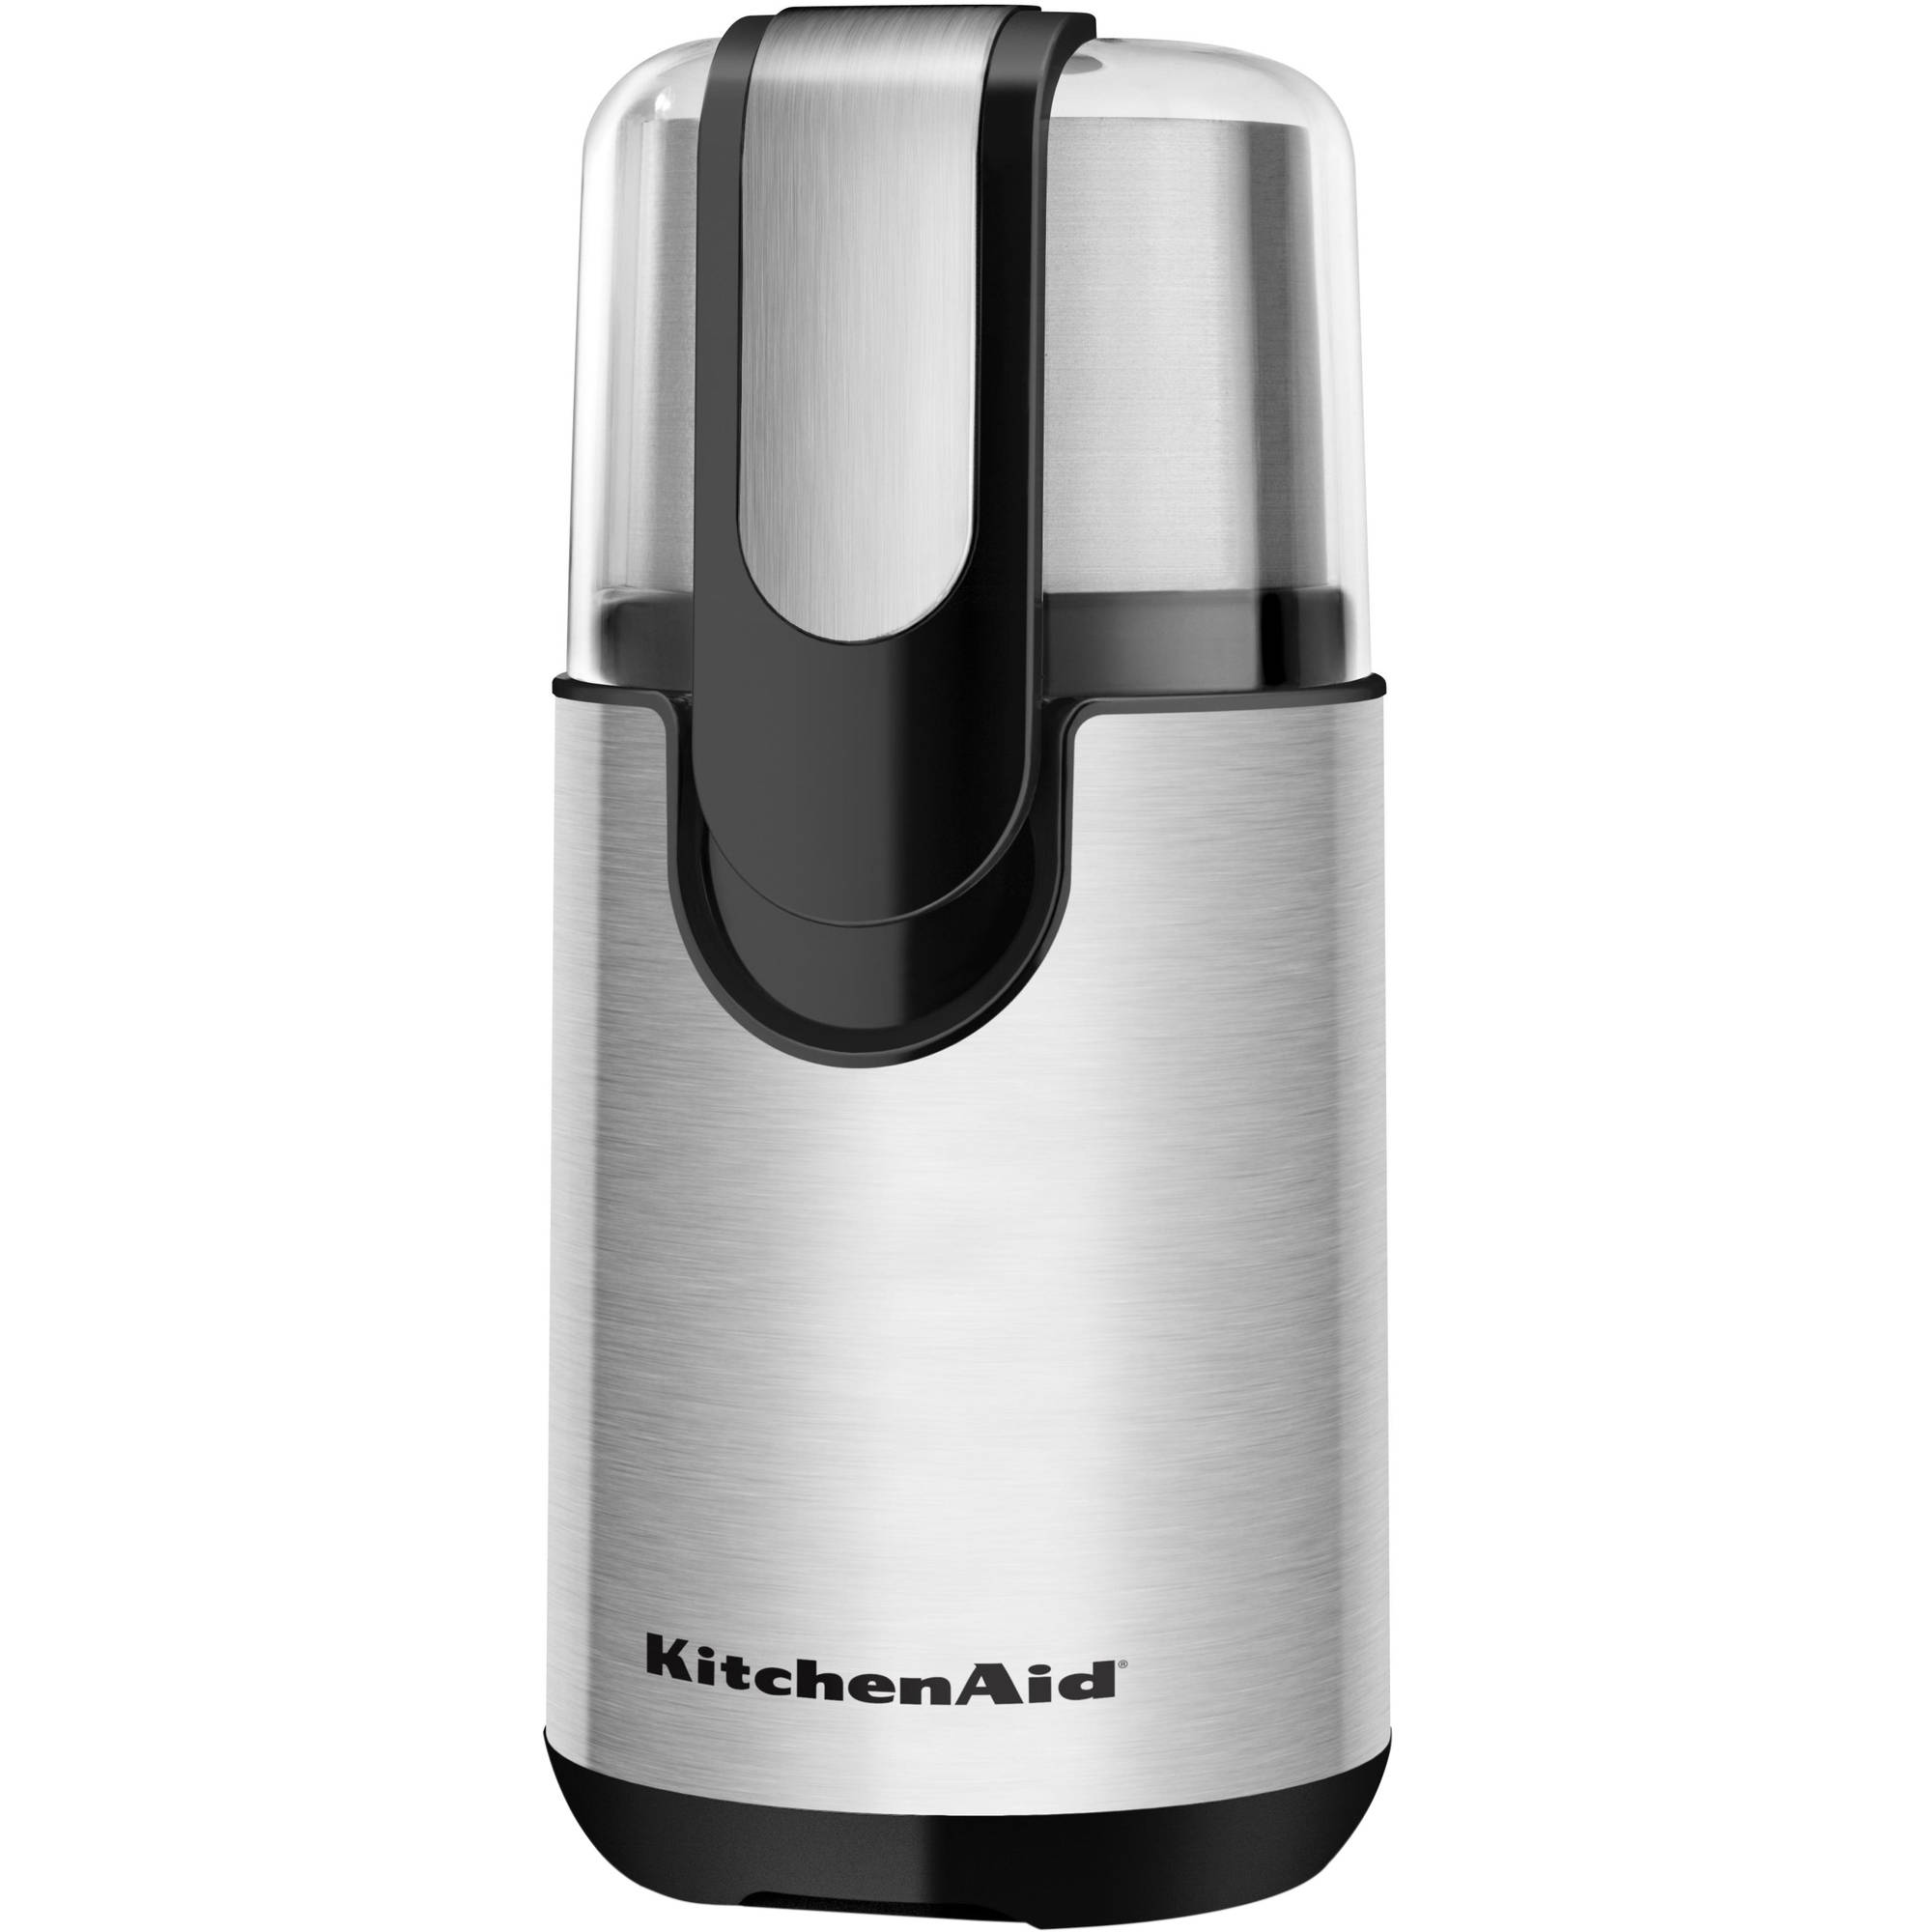 KitchenAid® Blade Coffee Grinder, Onyx Black (BCG111OB) - Walmart.com